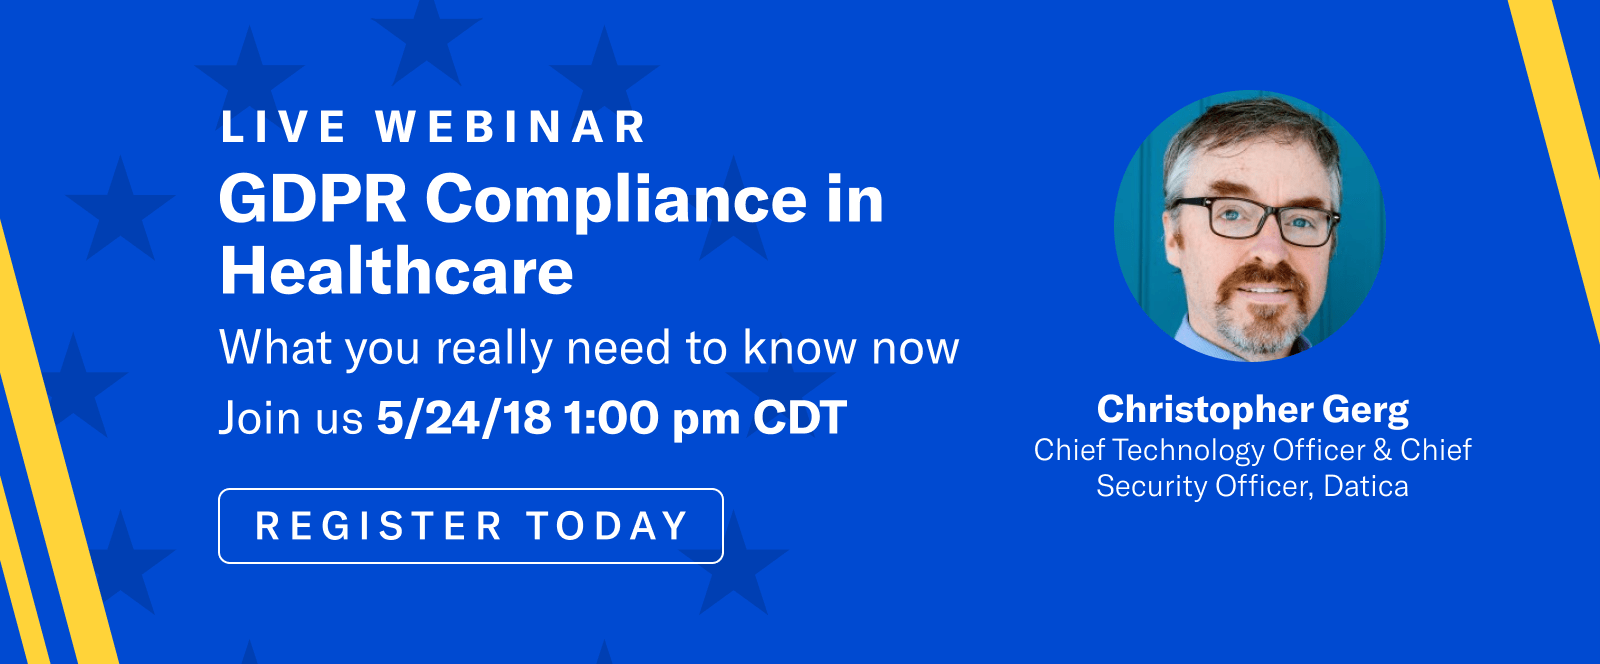 Sign up for the webinar today